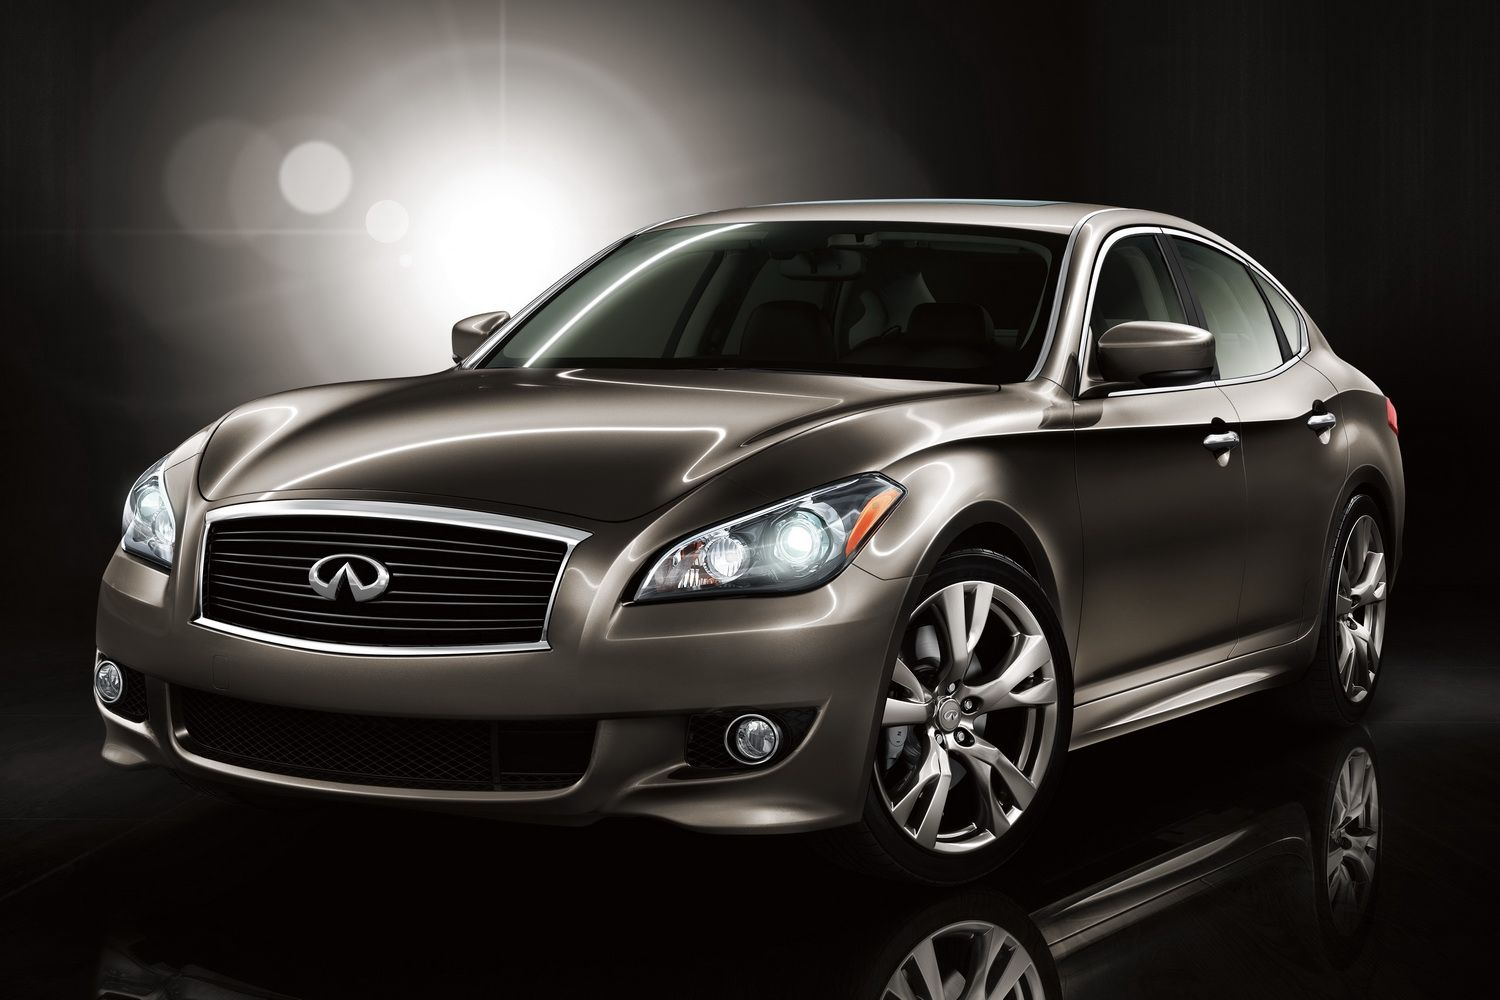 2011 Infiniti M for Sale